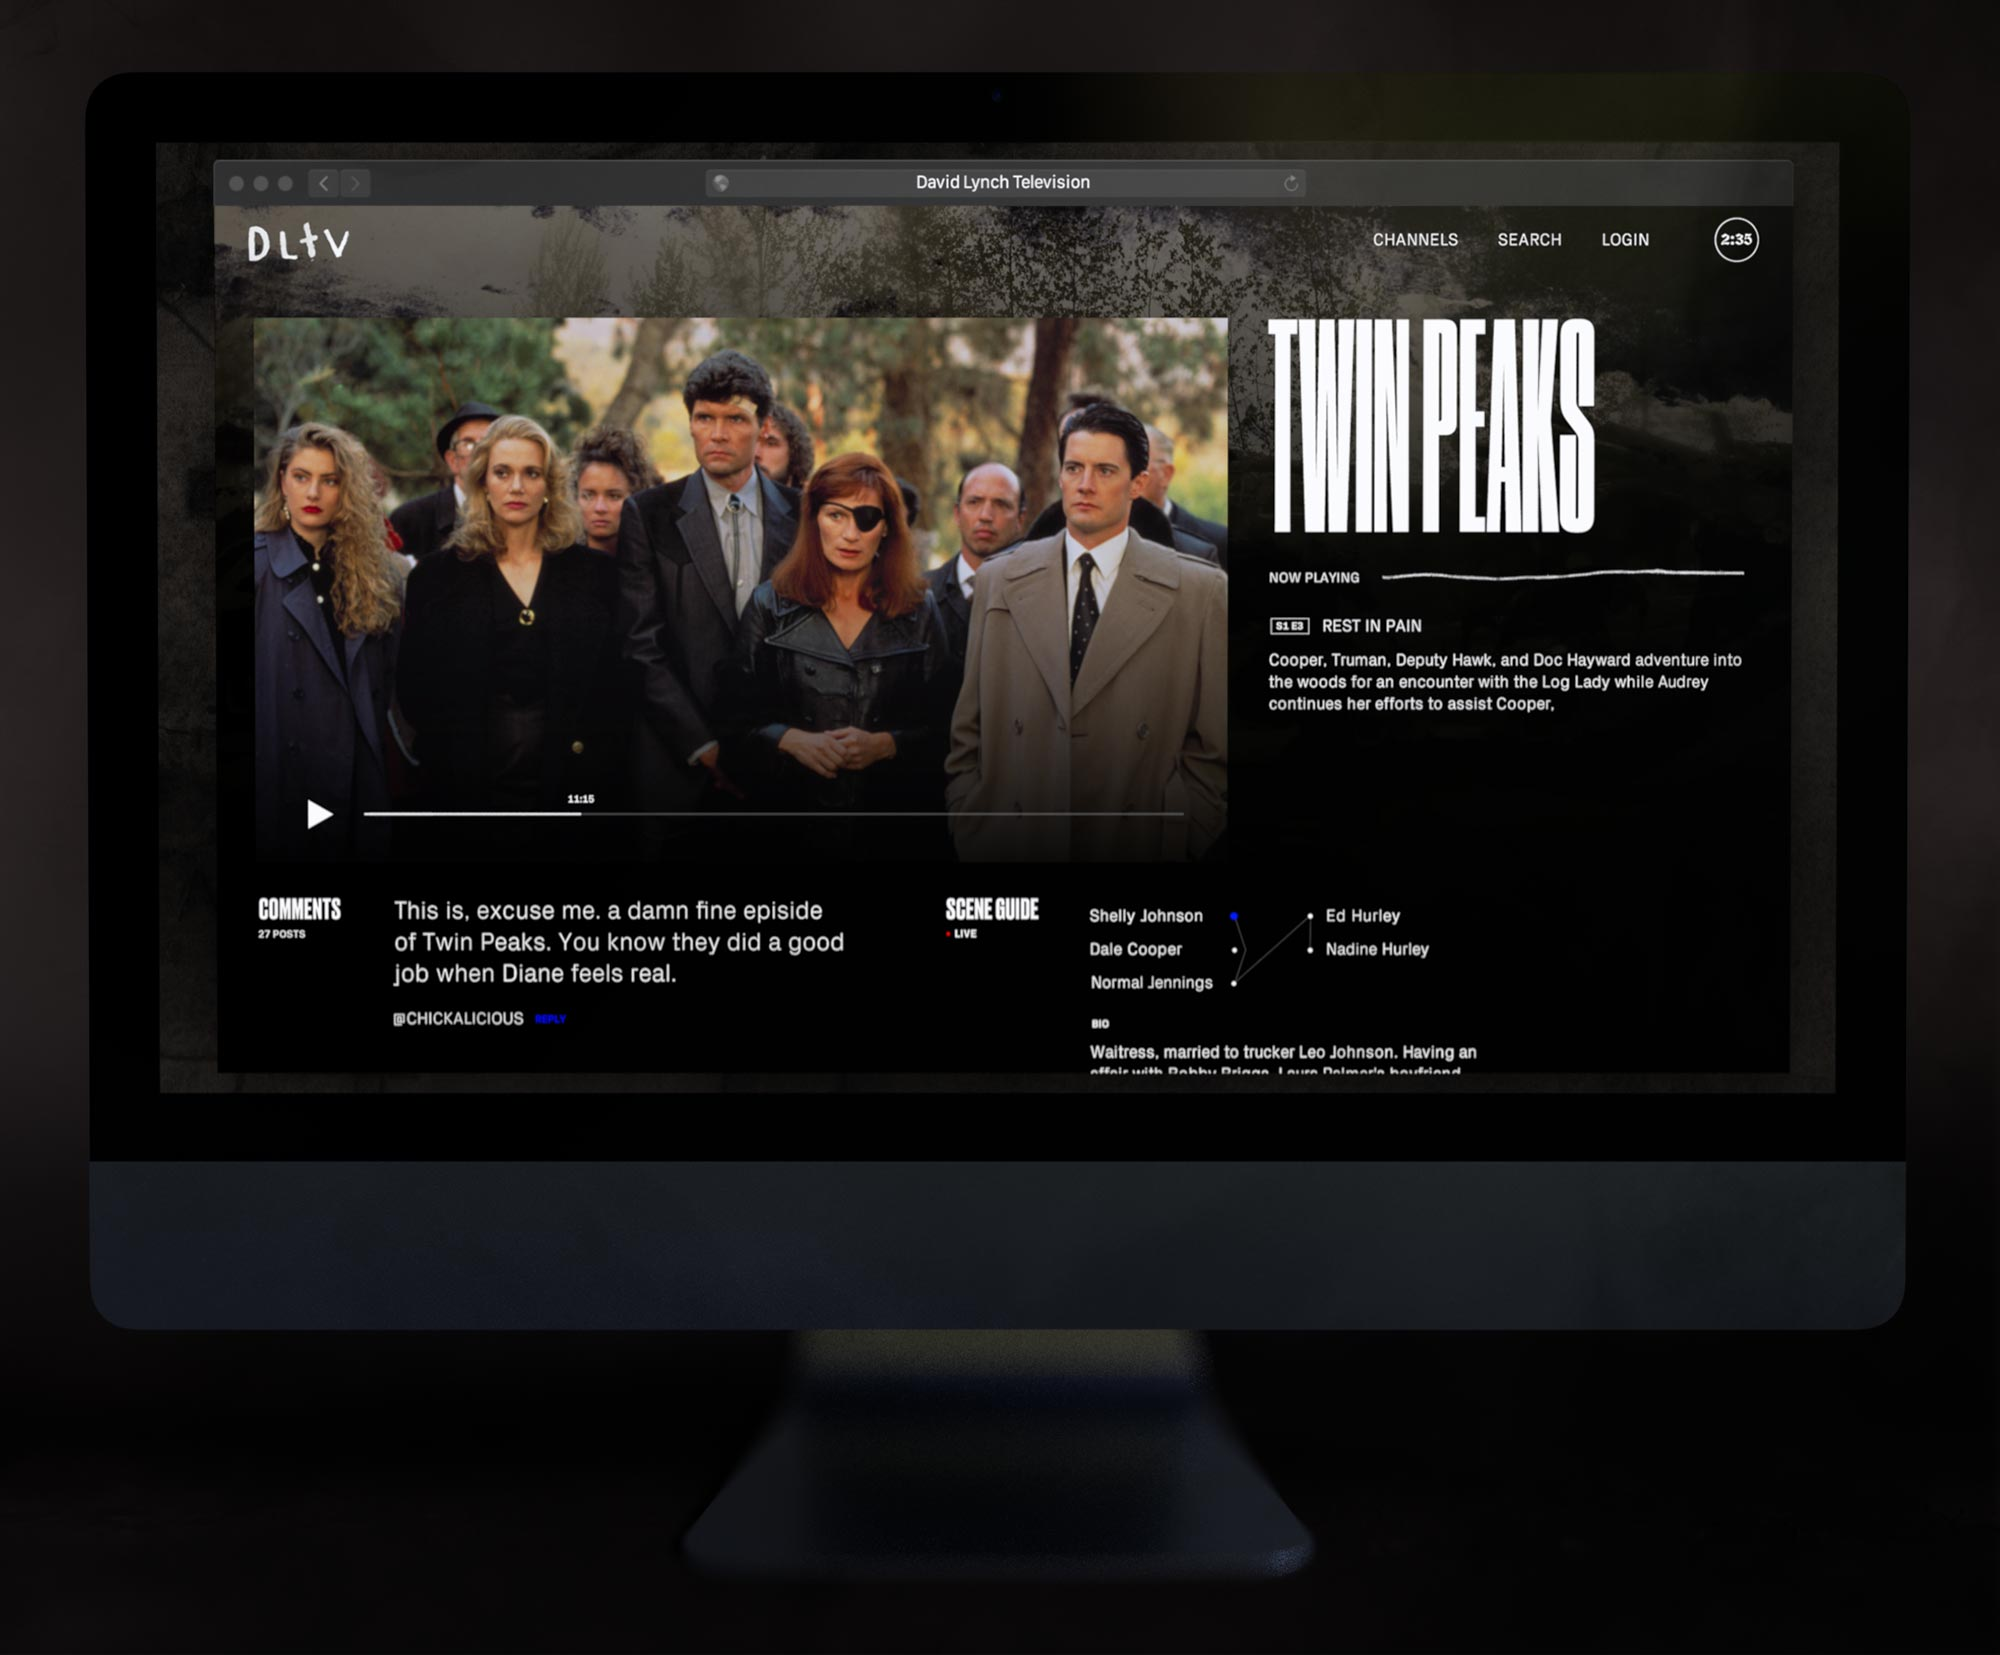 Web Design for Streaming Service David Lynch Television